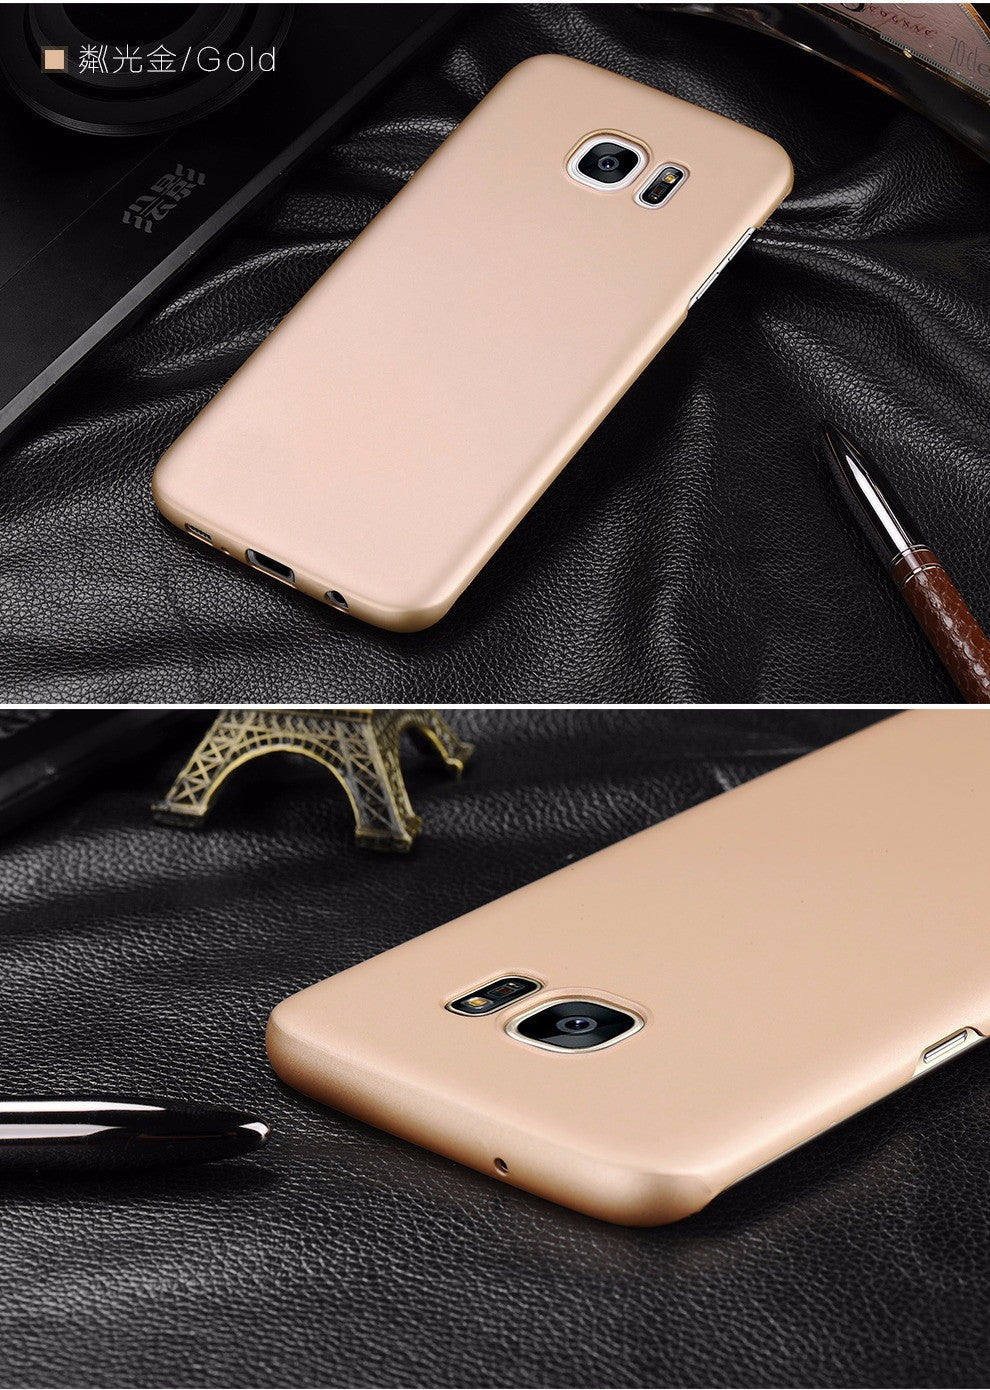 Samsung S7 edge case